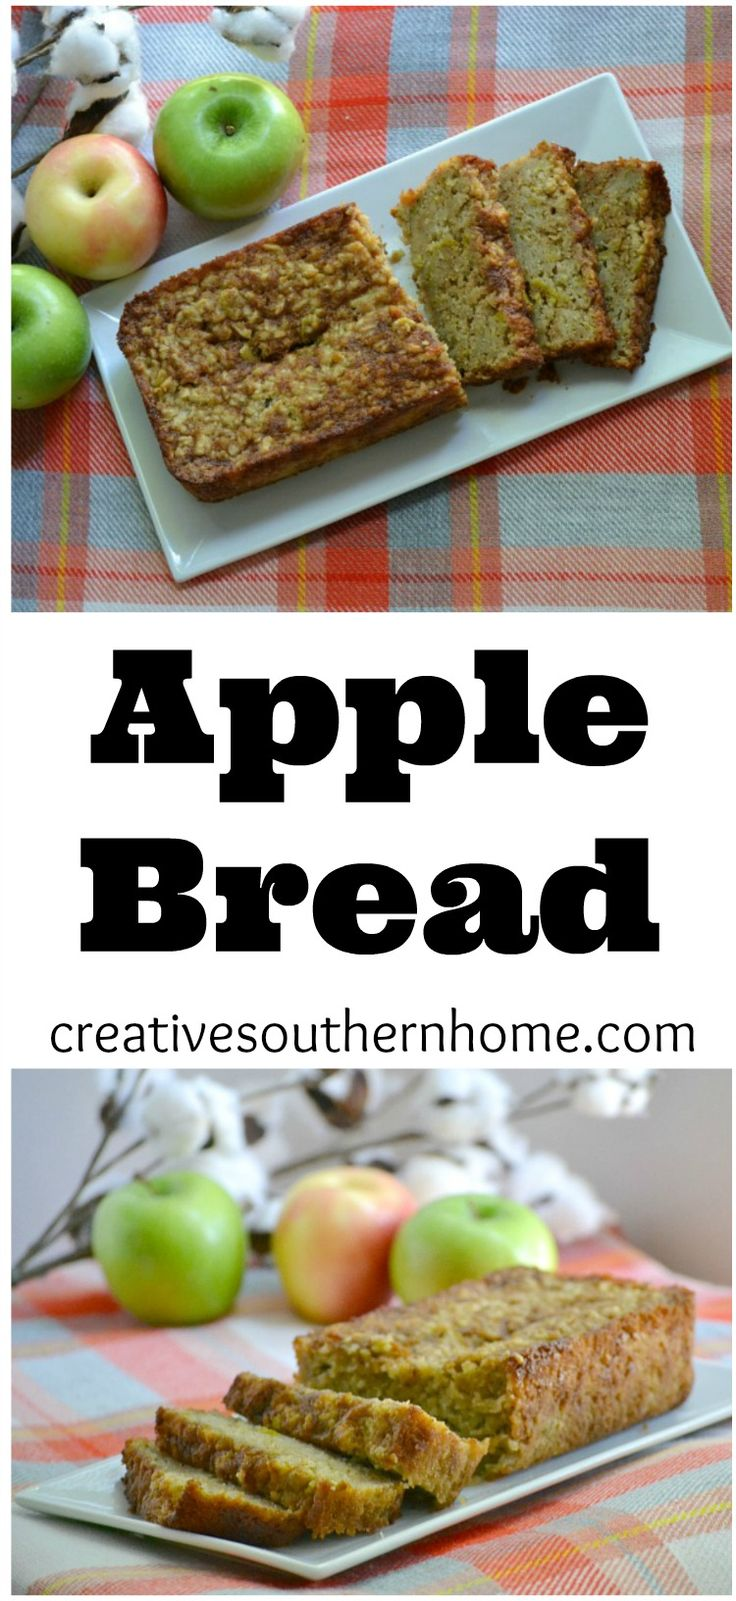 ... apples and spices this apple bread is perfect to enjoy on a cool crisp